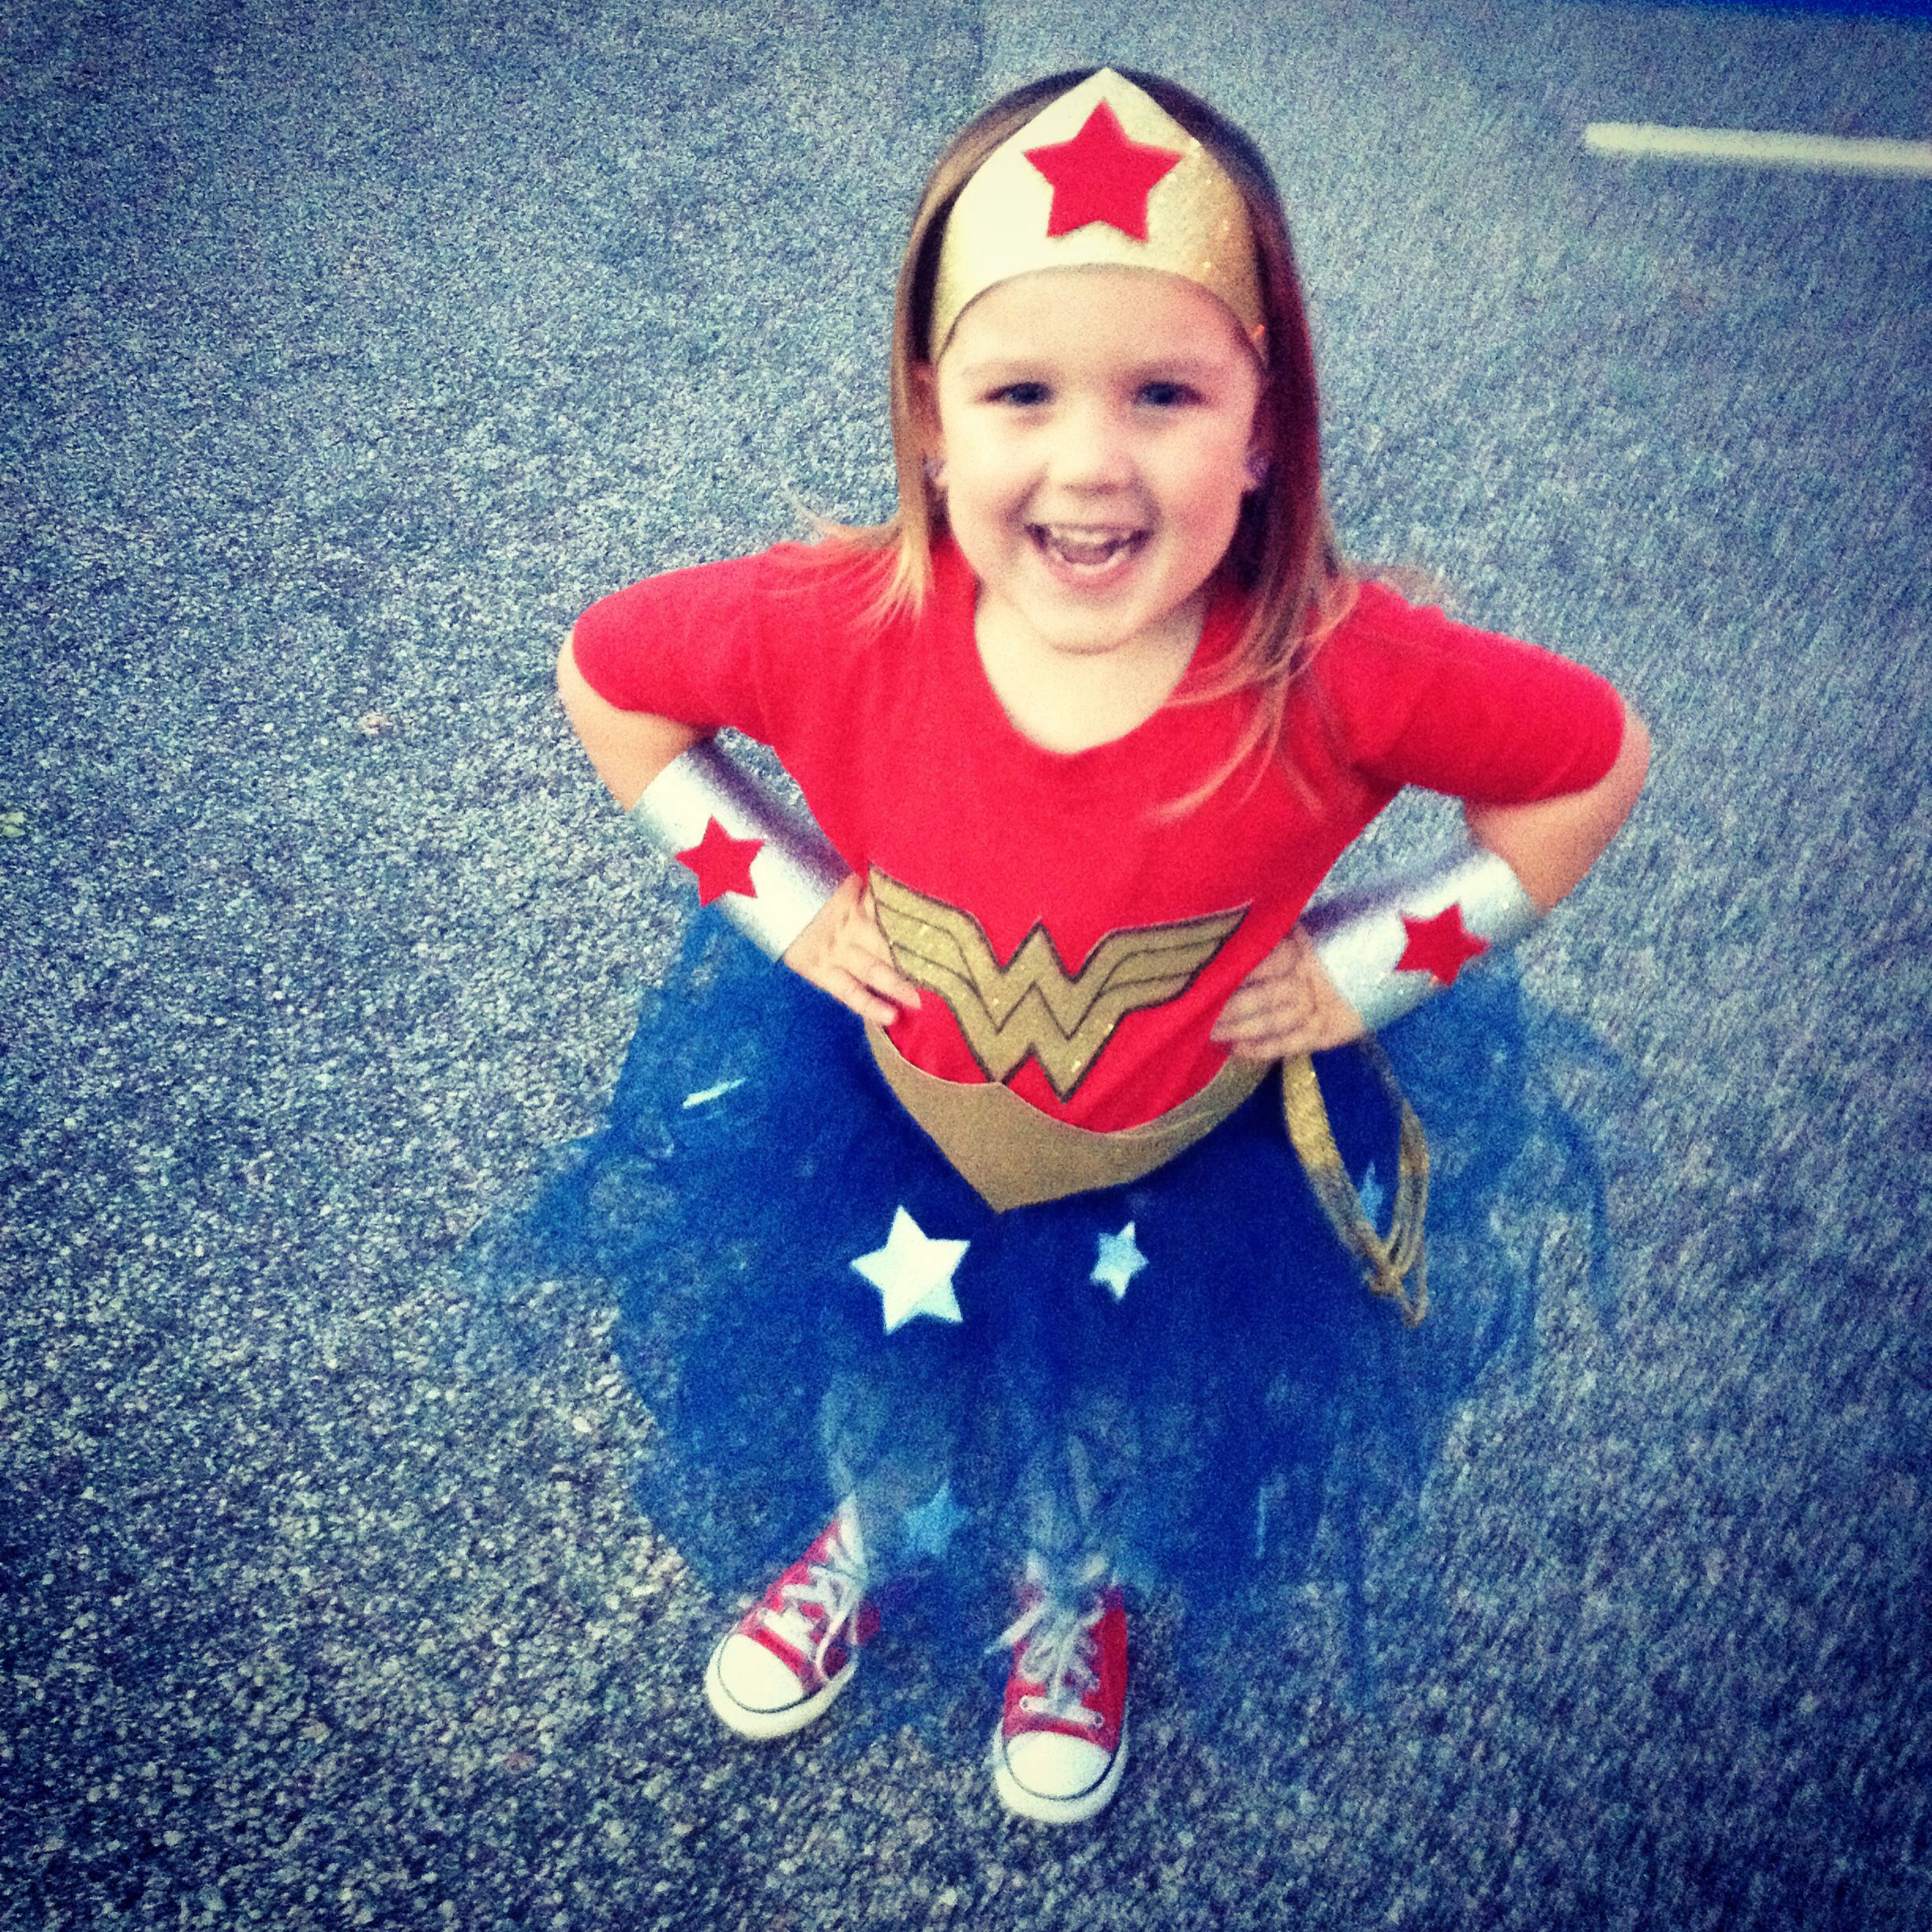 DIY Wonder Woman costume for toddlers | Fall/Halloween | Pinterest ...